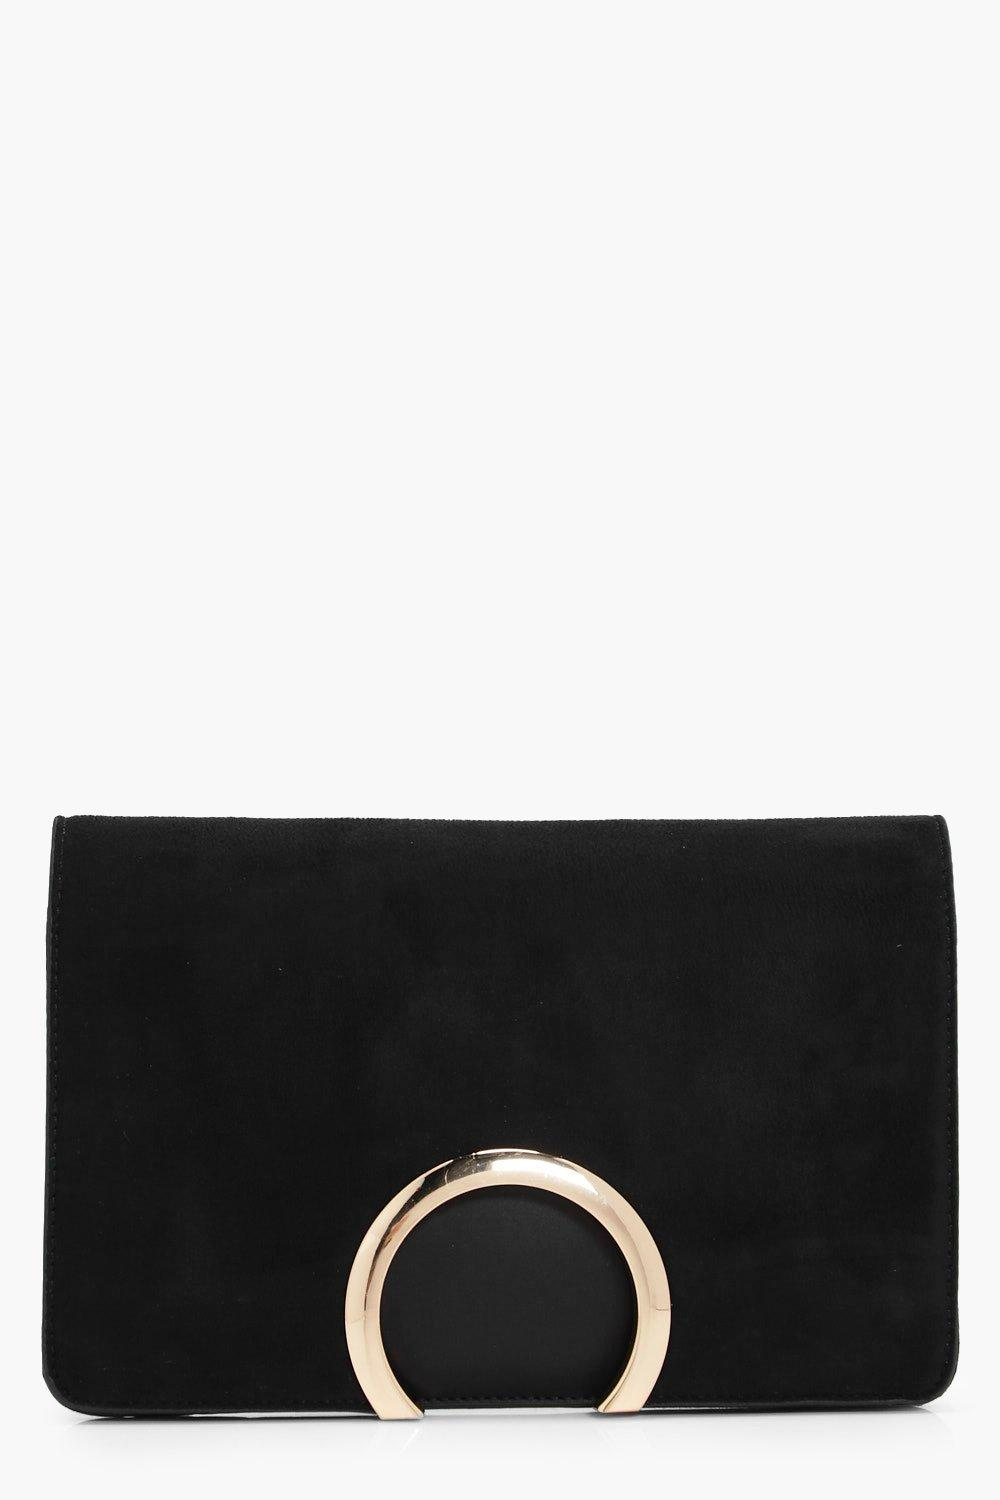 Metal Circle Suedette And PU Mix Clutch - black -